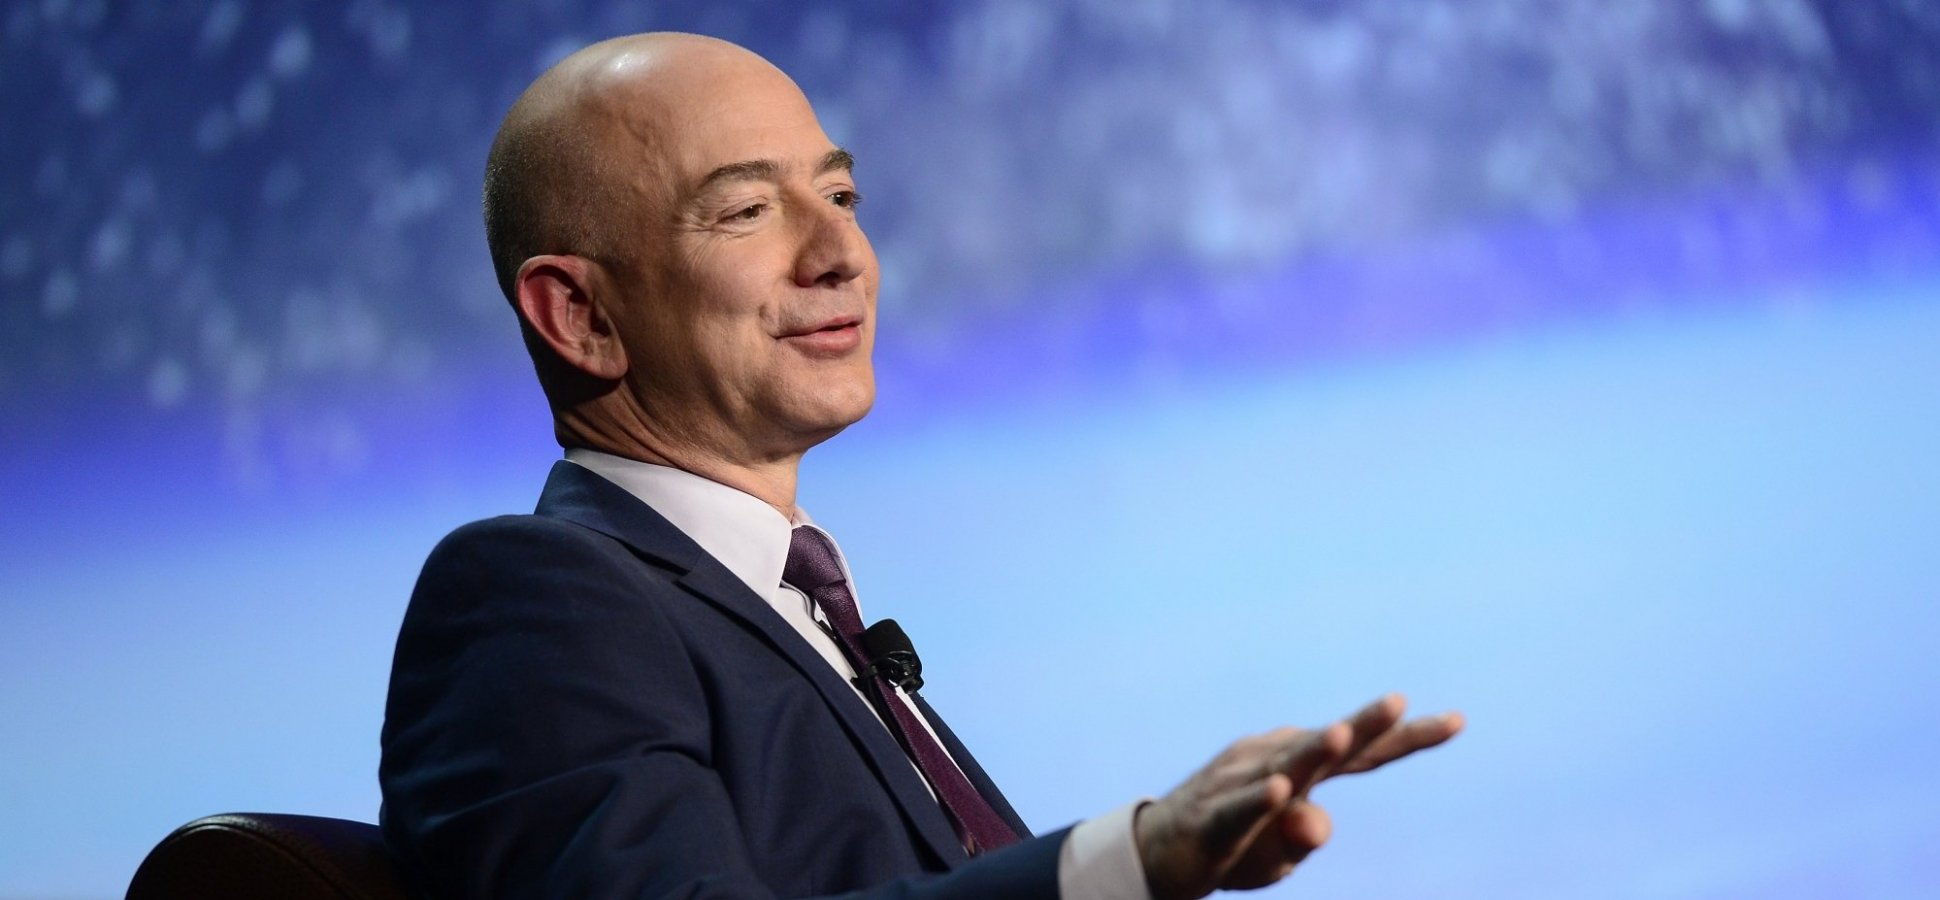 Jeff Bezos Knows How to Run a Meeting. Here's How He Does It